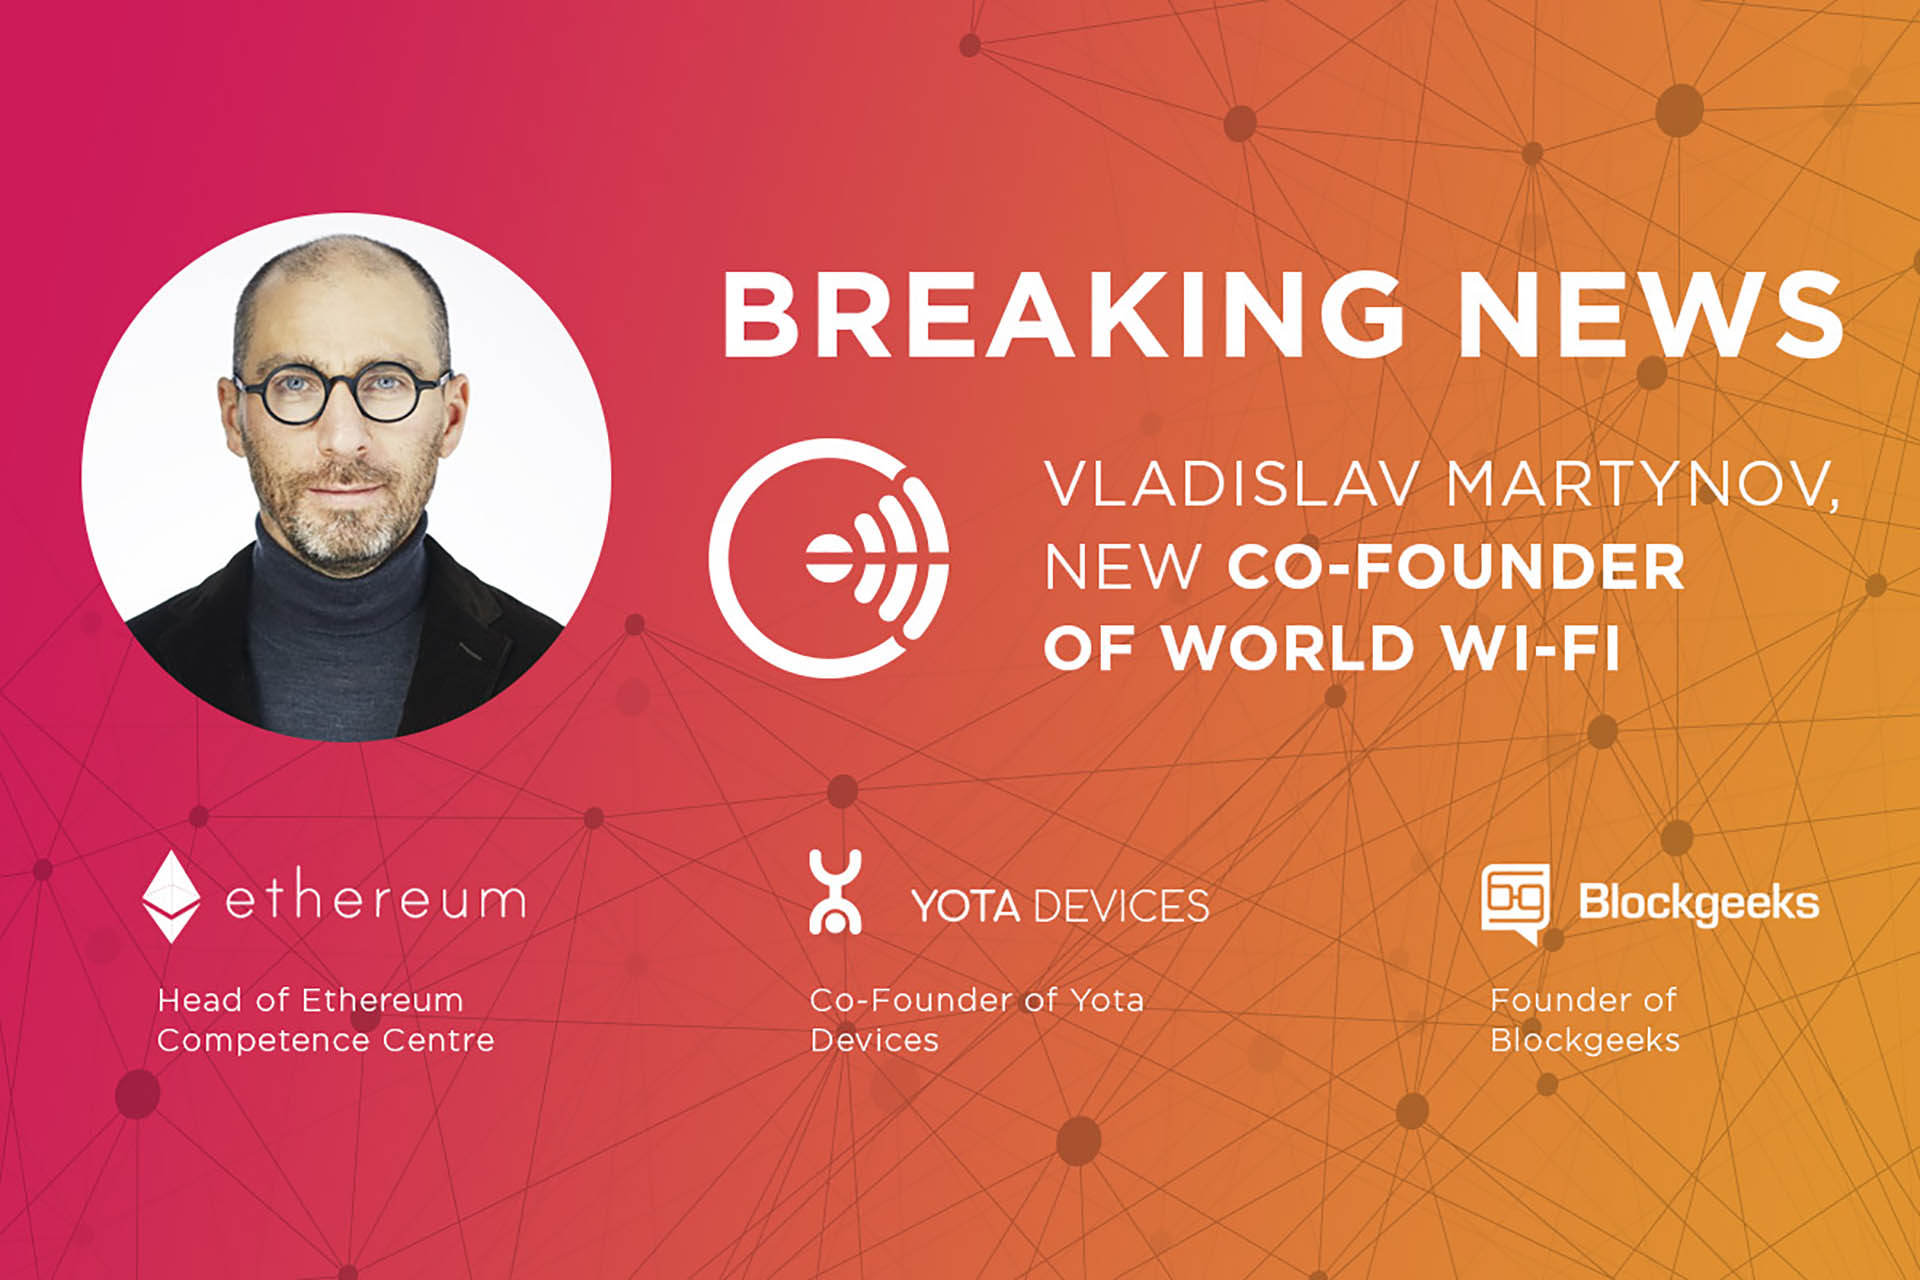 Head of Ethereum Competence Center Vladislav Martynov Joined World Wi-Fi as a Co-Founder